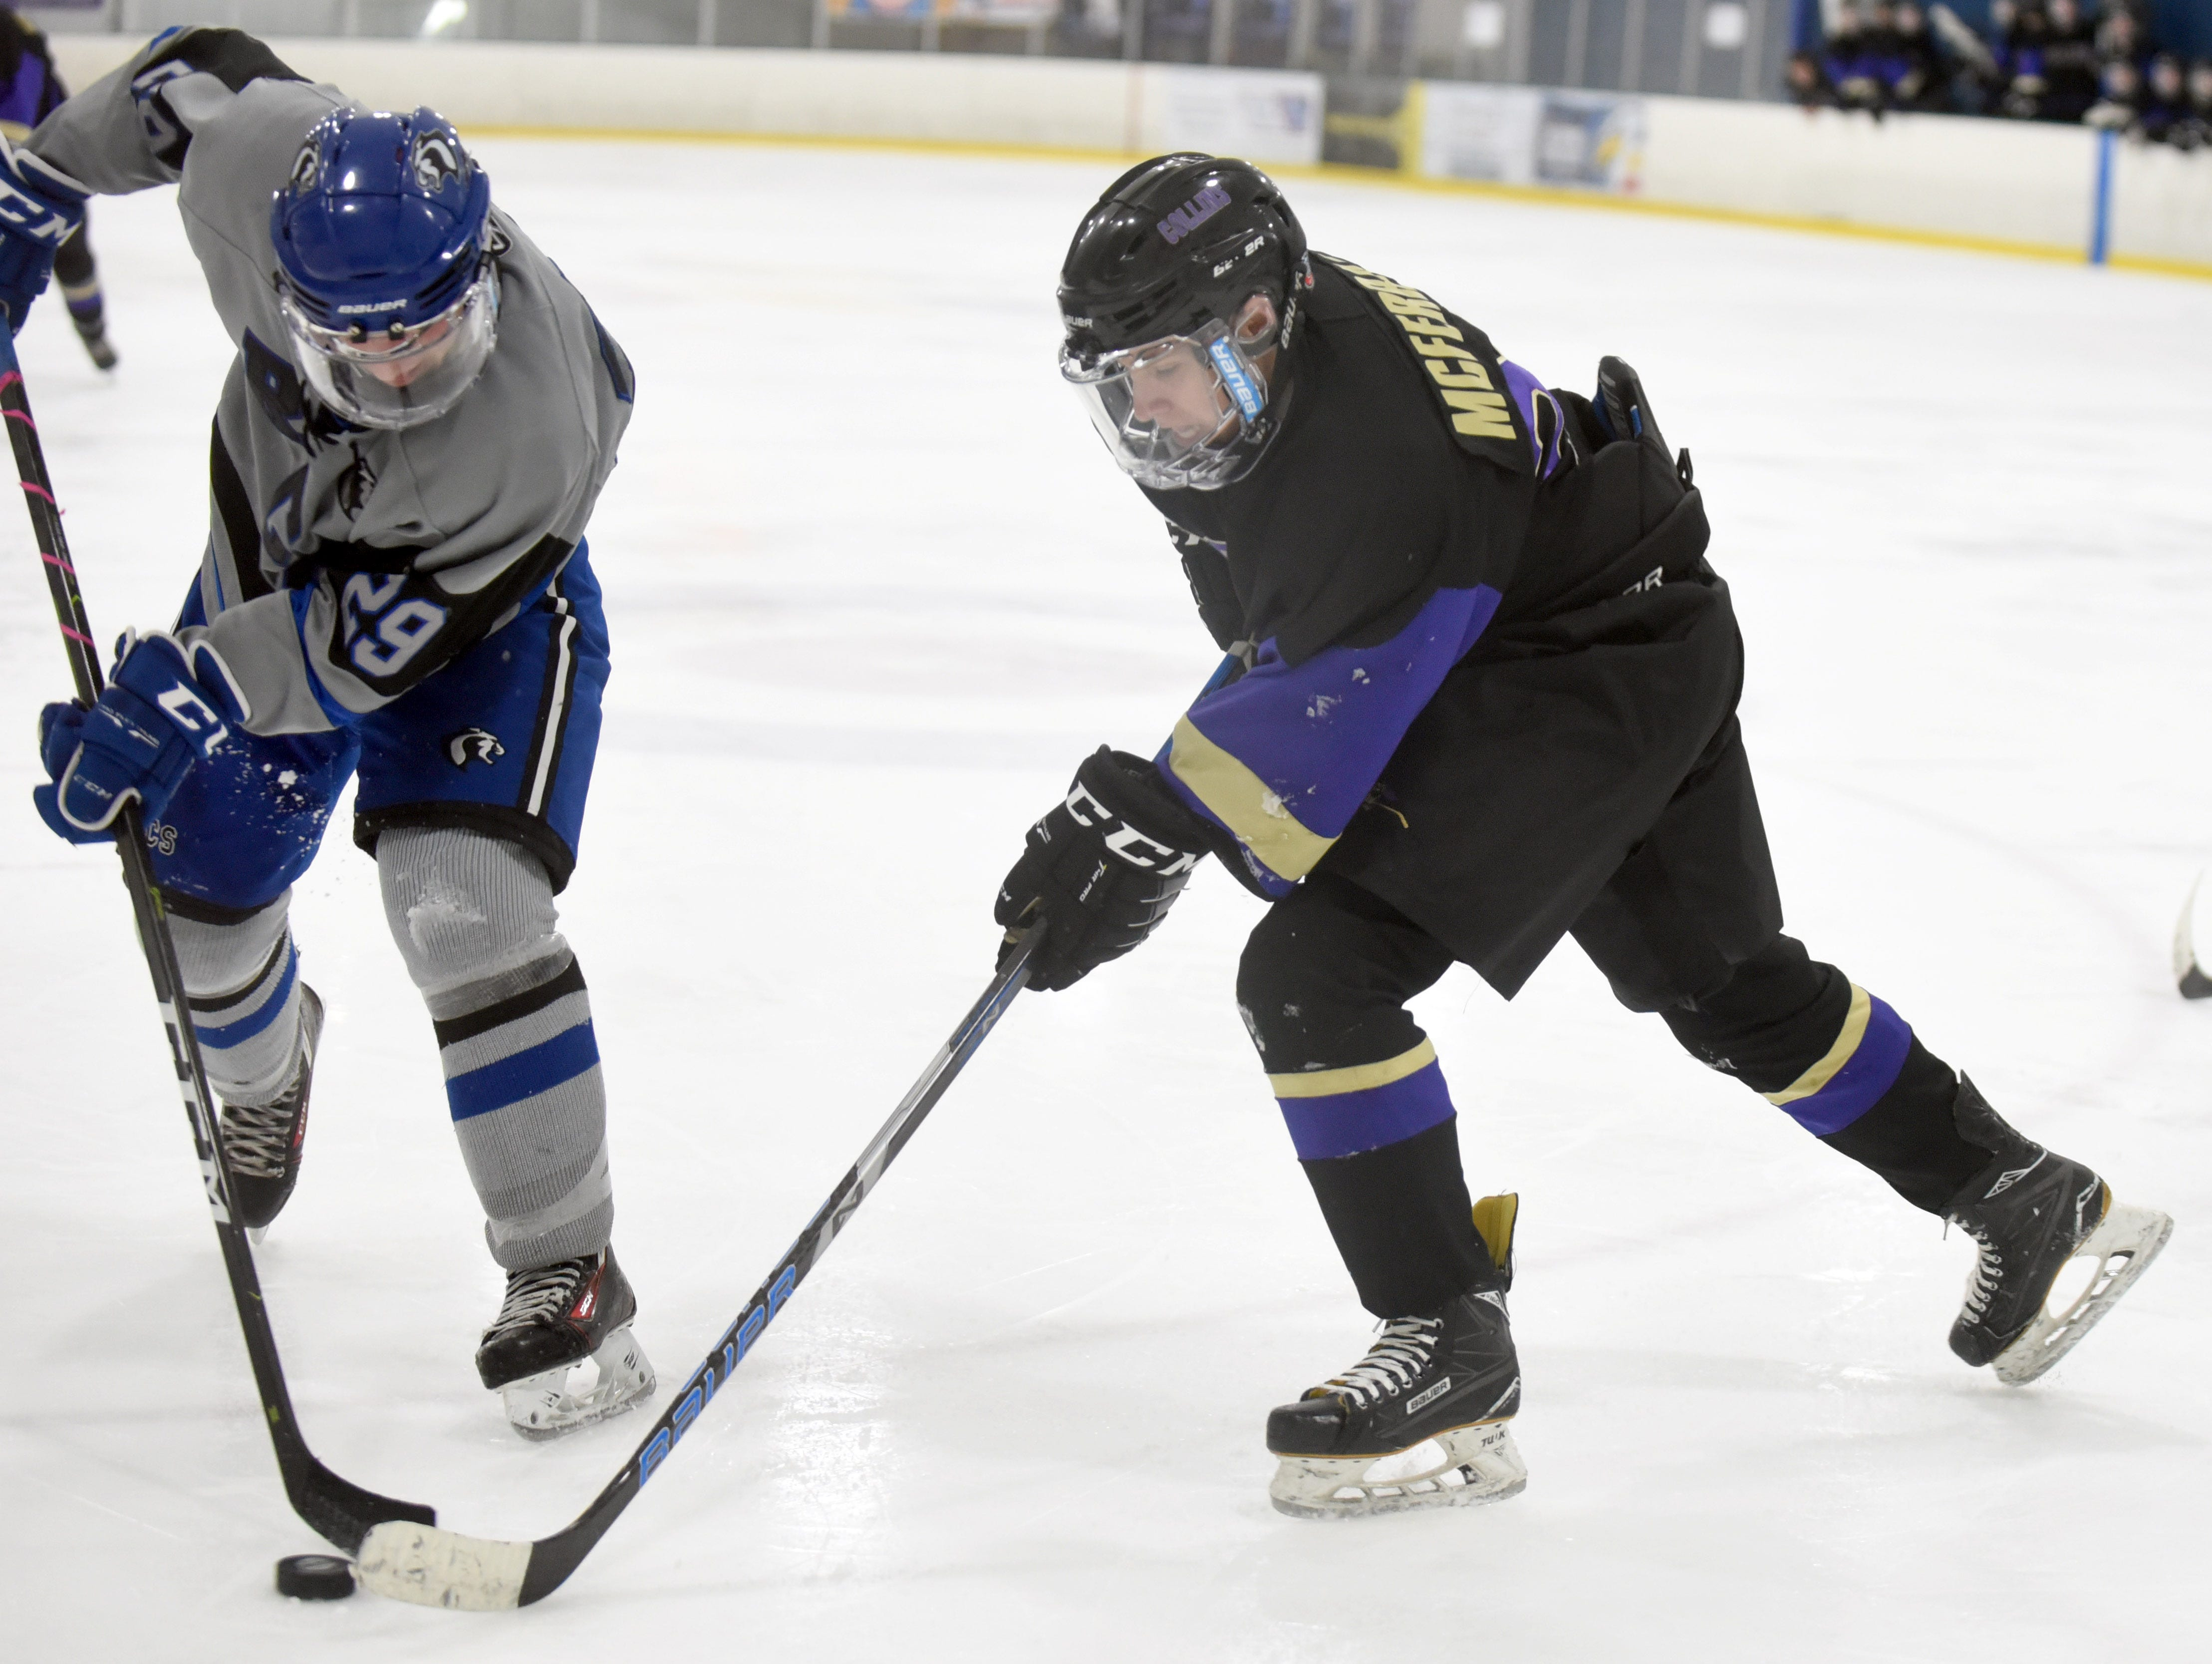 Fort Collins' Jared McFerran tries to dribble the puck around Resurrection Christian's Michael Lewis during the game on Saturday, Feb 2, at NoCo Ice Center, 7900 N Fairgrounds Ave, in Fort Collins.